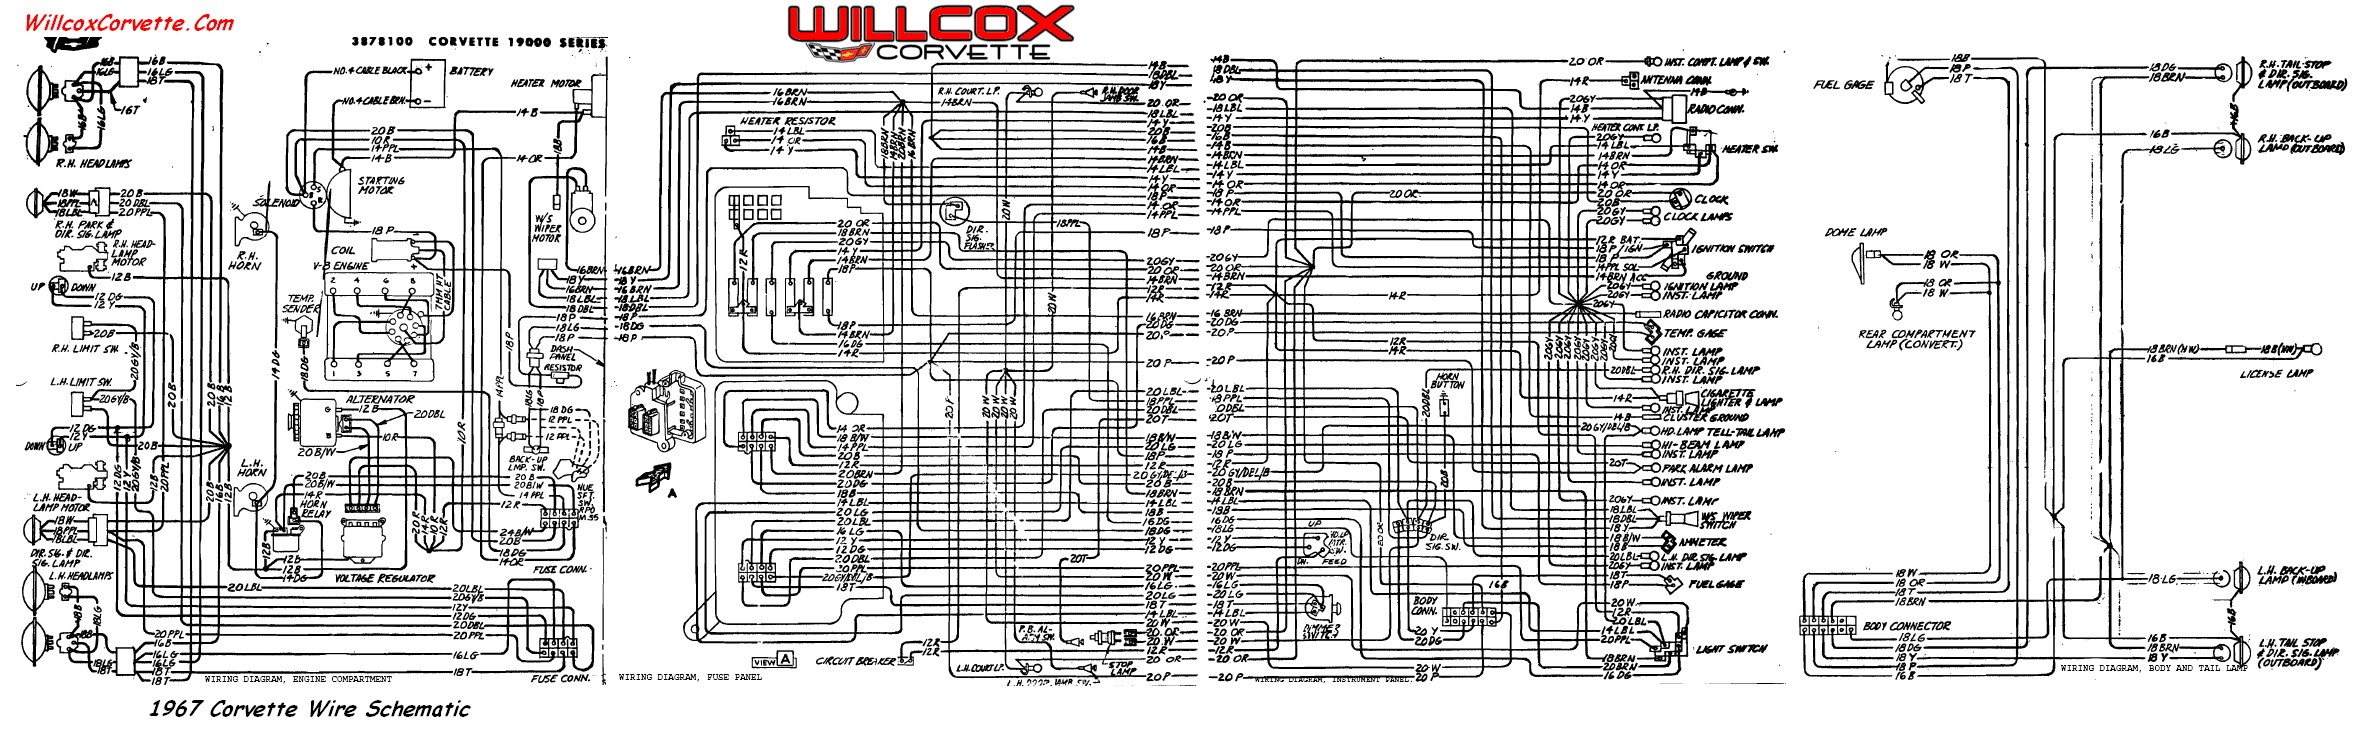 c3 corvette wiring diagram best of 1979 wire diagram and 1975 corvette wiring wiring diagram of c3 corvette wiring diagram c3 corvette fuse diagram wiring diagram online